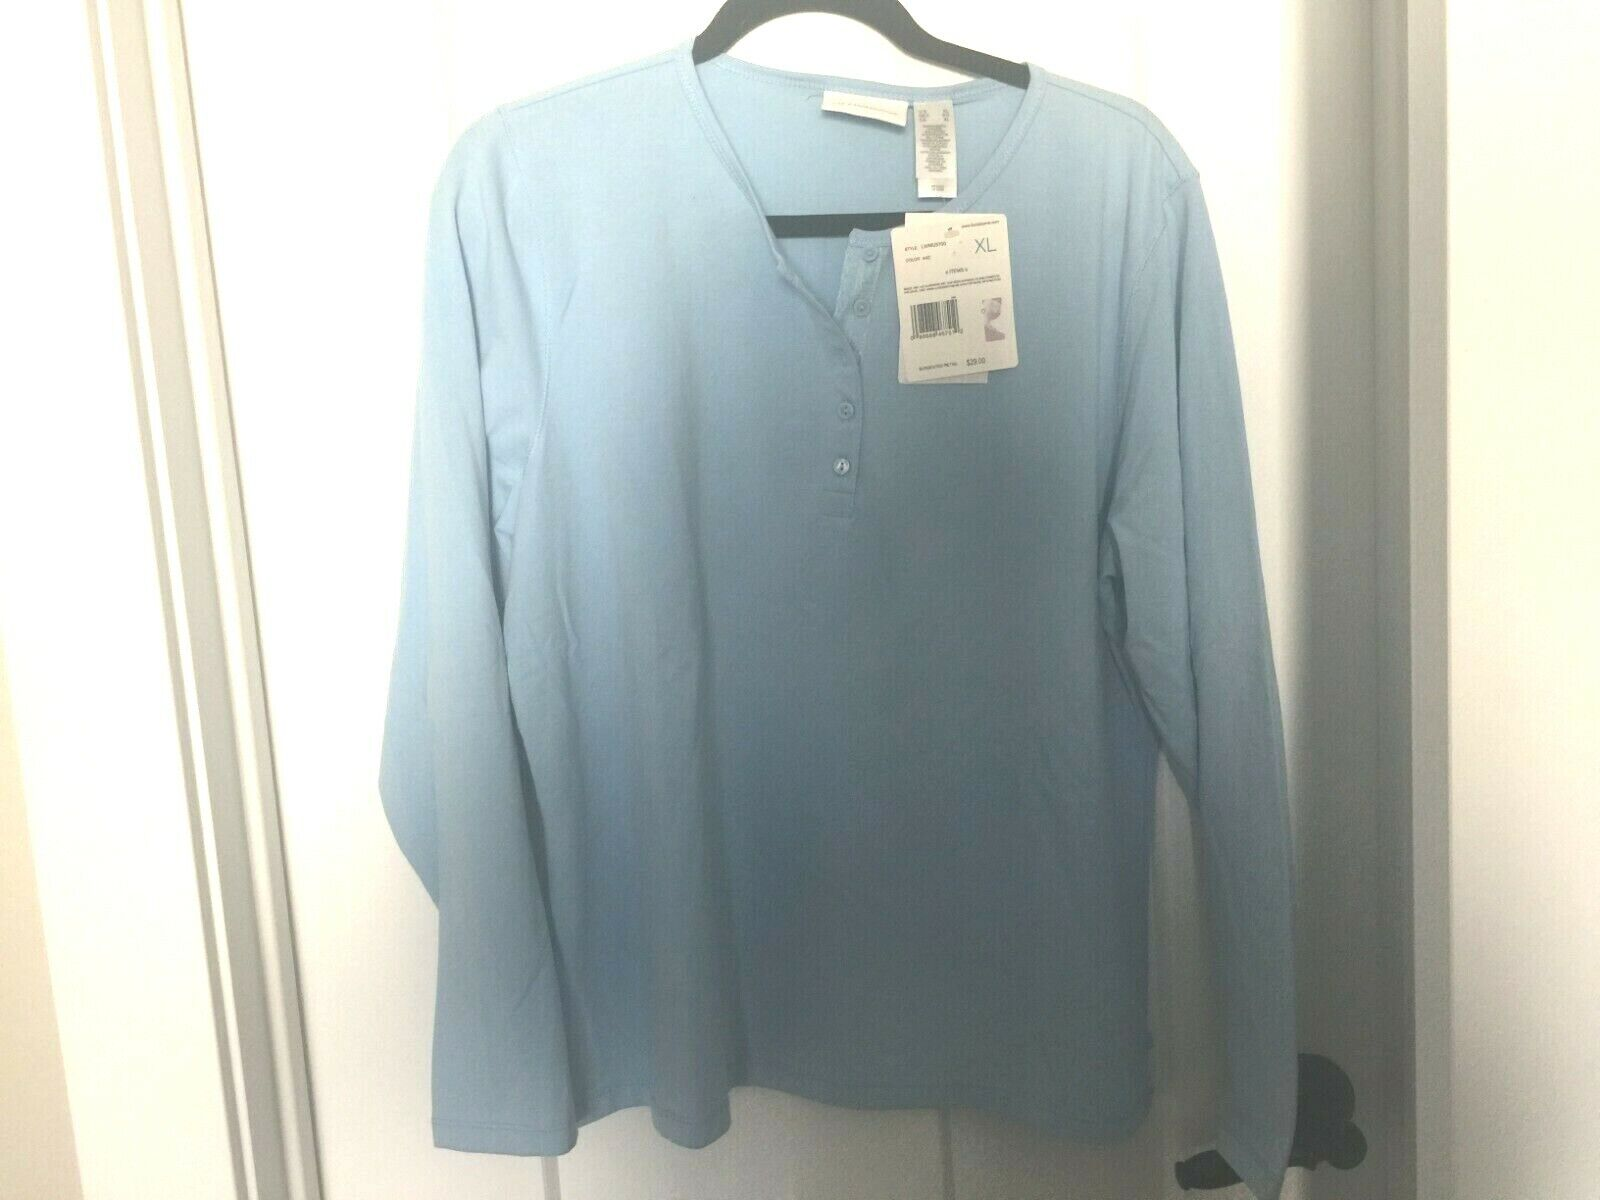 NEW WITH TAGS! ~LIZ CLAIBORNE~ STRETCH COTTON KNIT TOP LIGHT